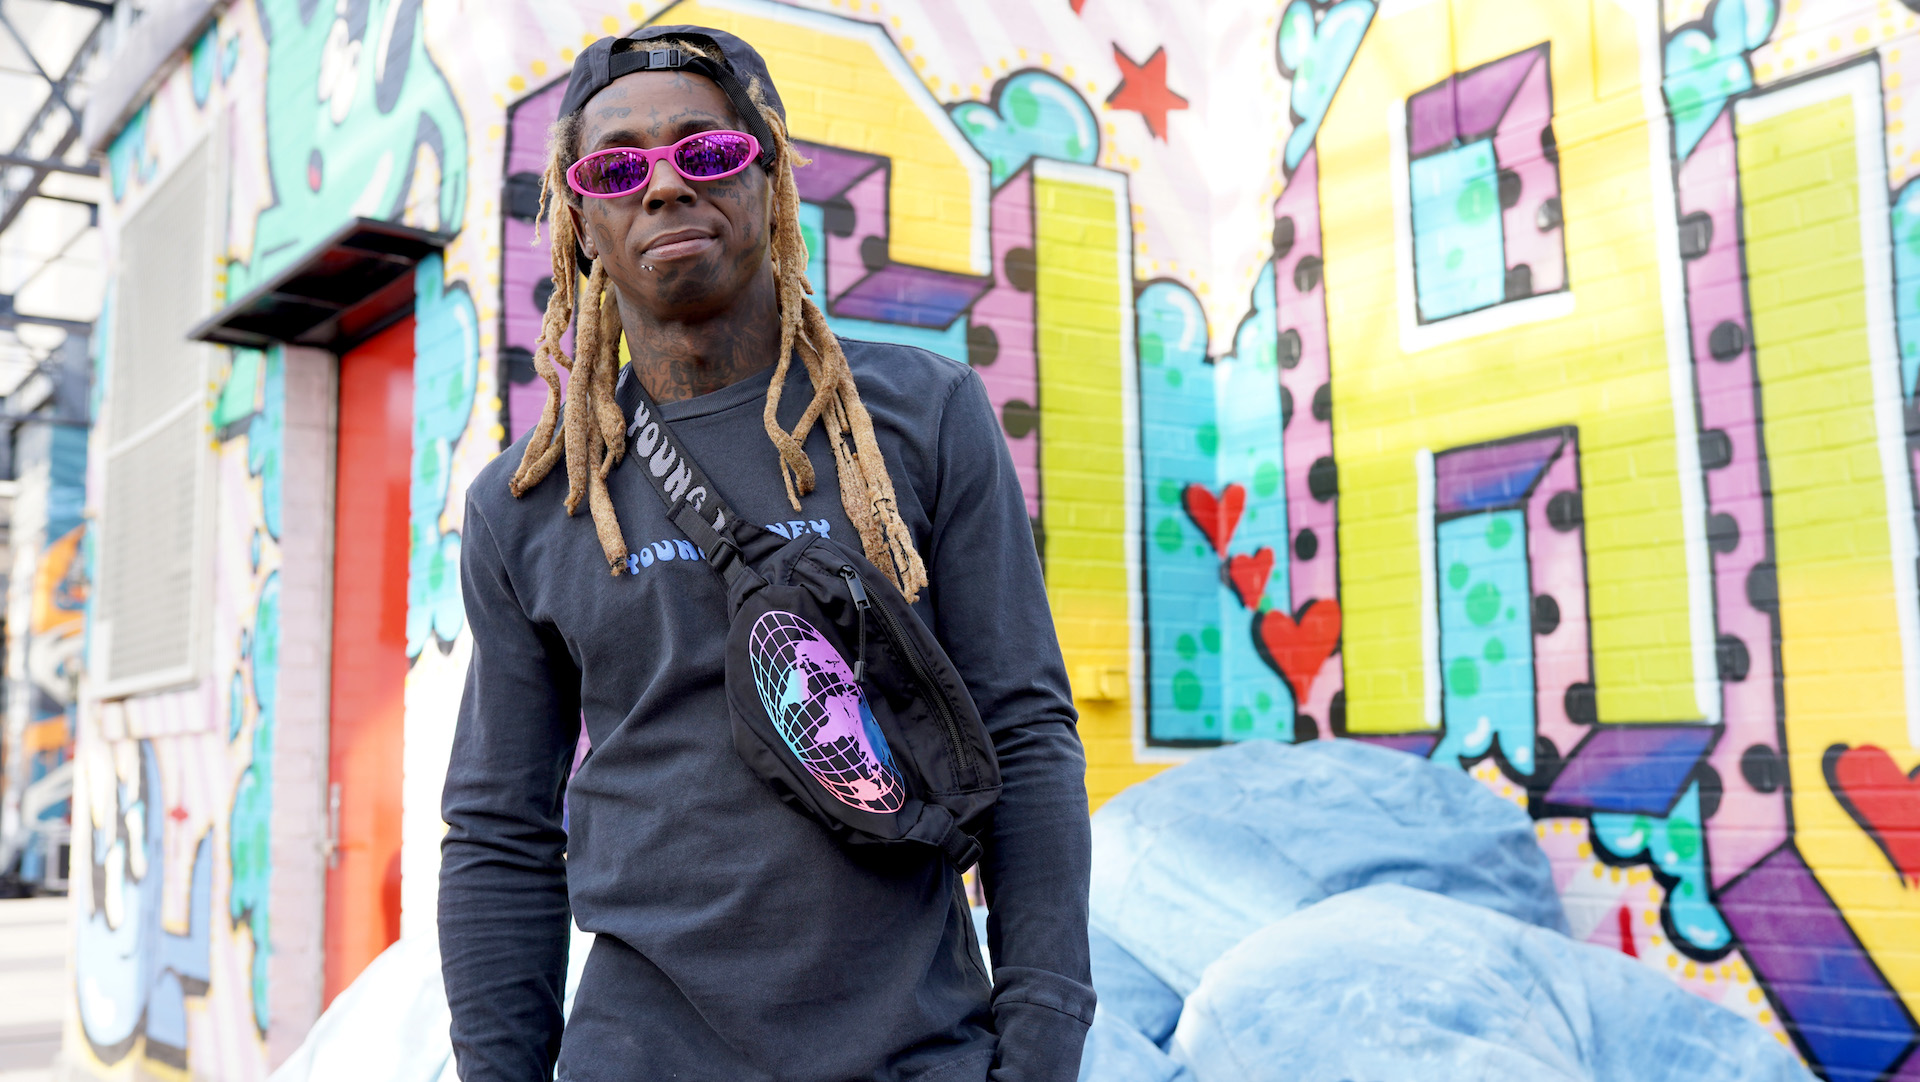 Bus Driver in Lil Wayne Shooting Reportedly Believes Birdman and Young Thug Struck Deals With Prosecutors